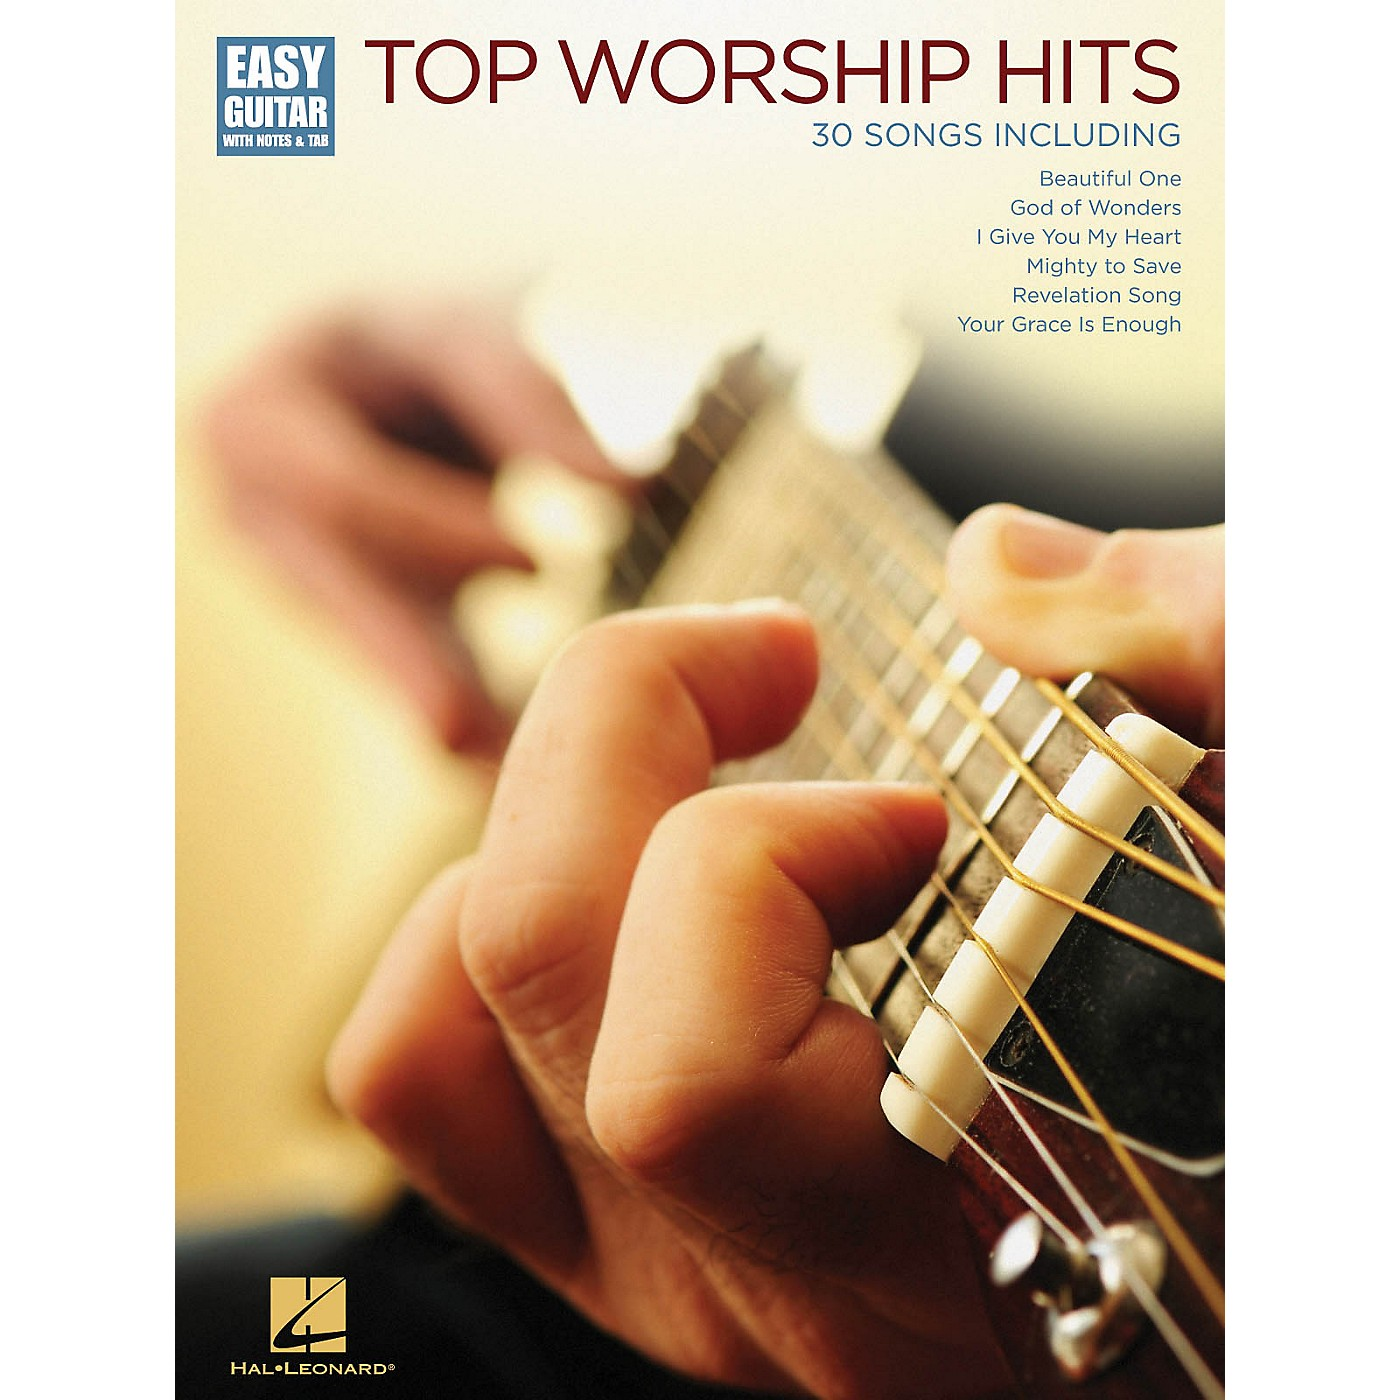 Hal Leonard Top Worship Hits (Easy Guitar with Notes & Tab) Easy Guitar Series Softcover Performed by Various thumbnail